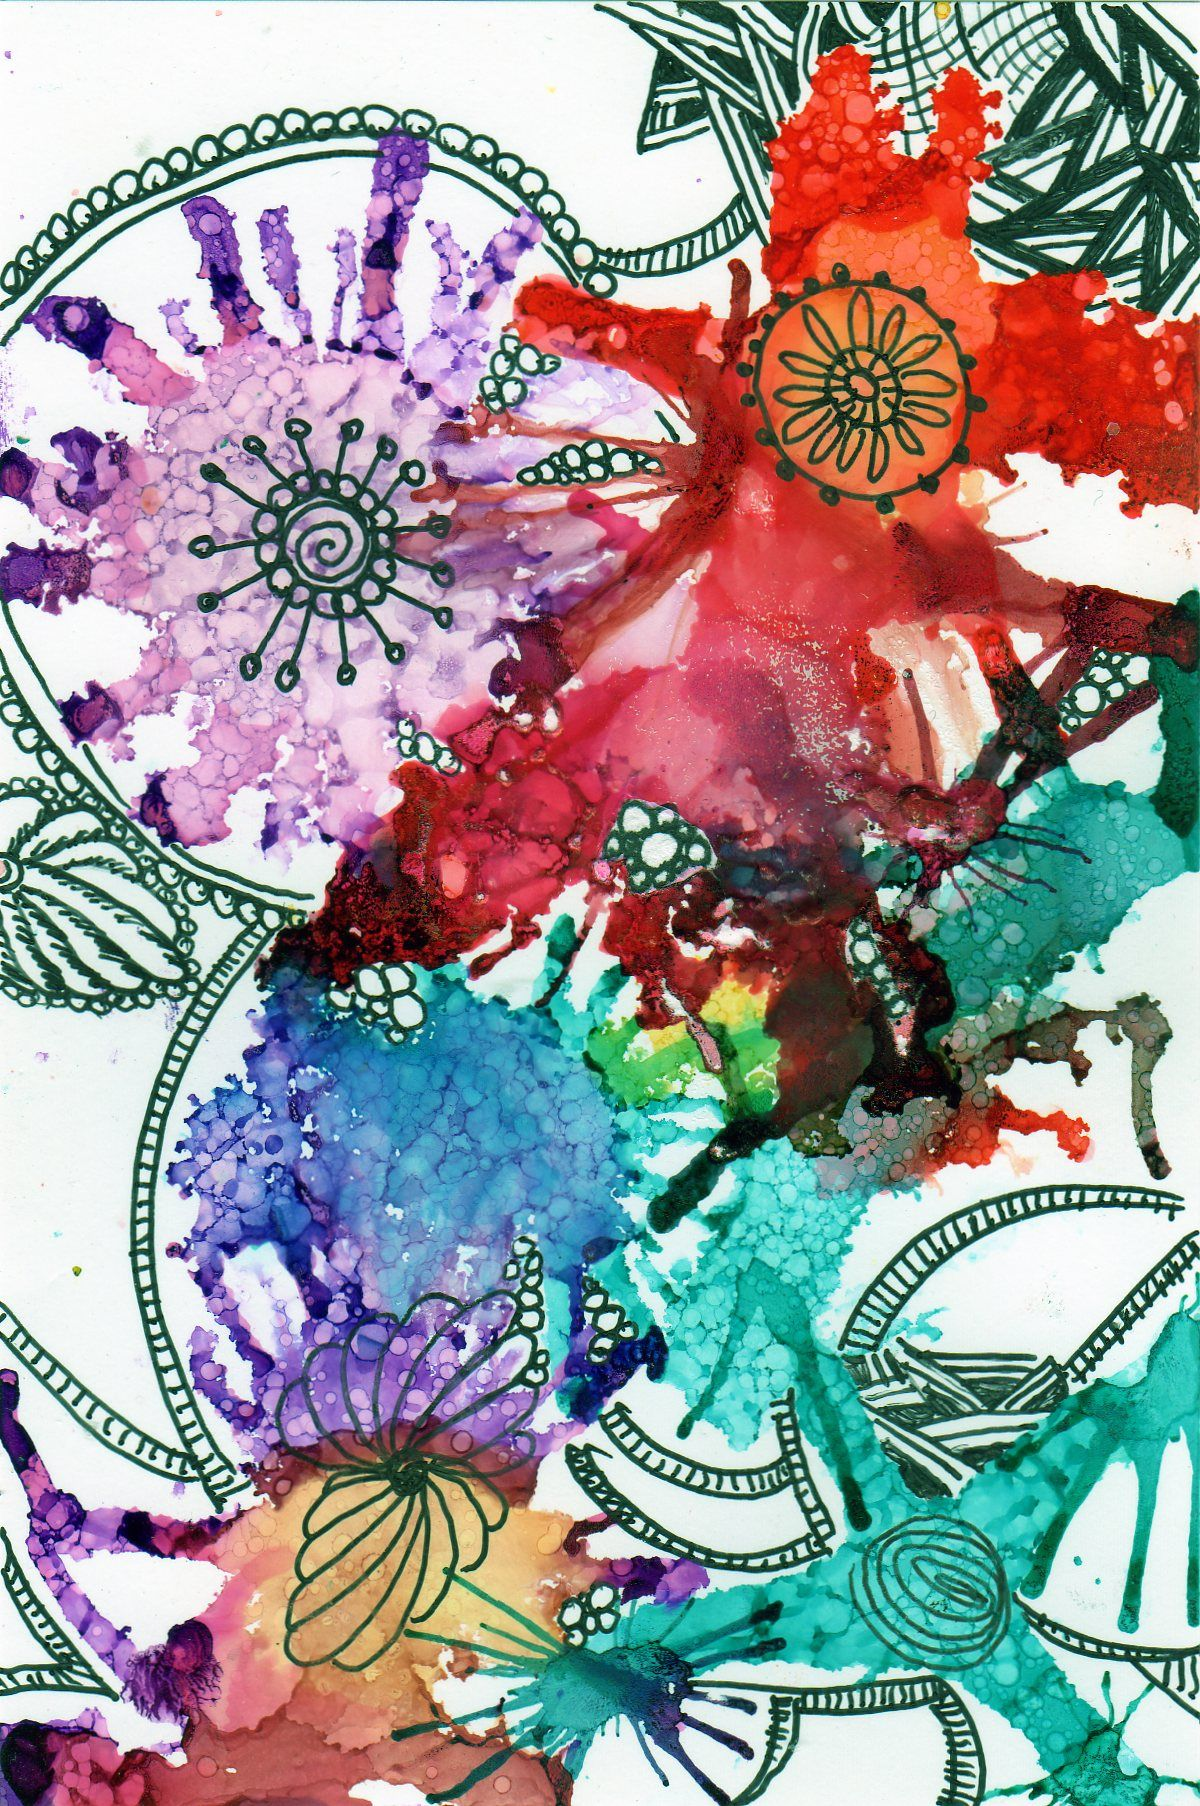 alcohol ink and pen on photo paper by linda giese | my art | Pinterest